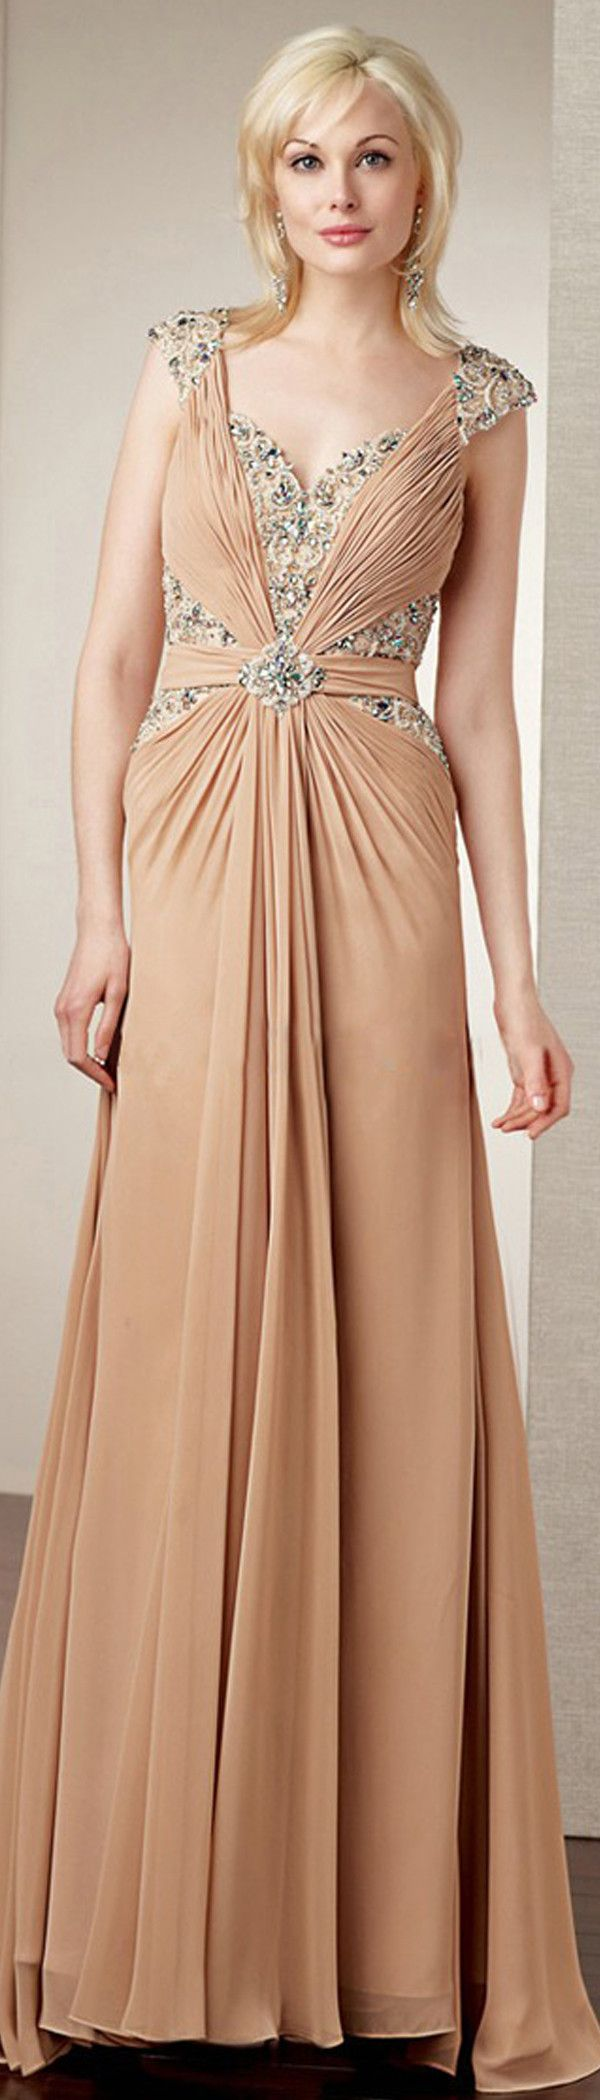 Futuristic Stretch Satin & Chiffon A-line Sweetheart Neckline Full Length Mother of the Bride Dress